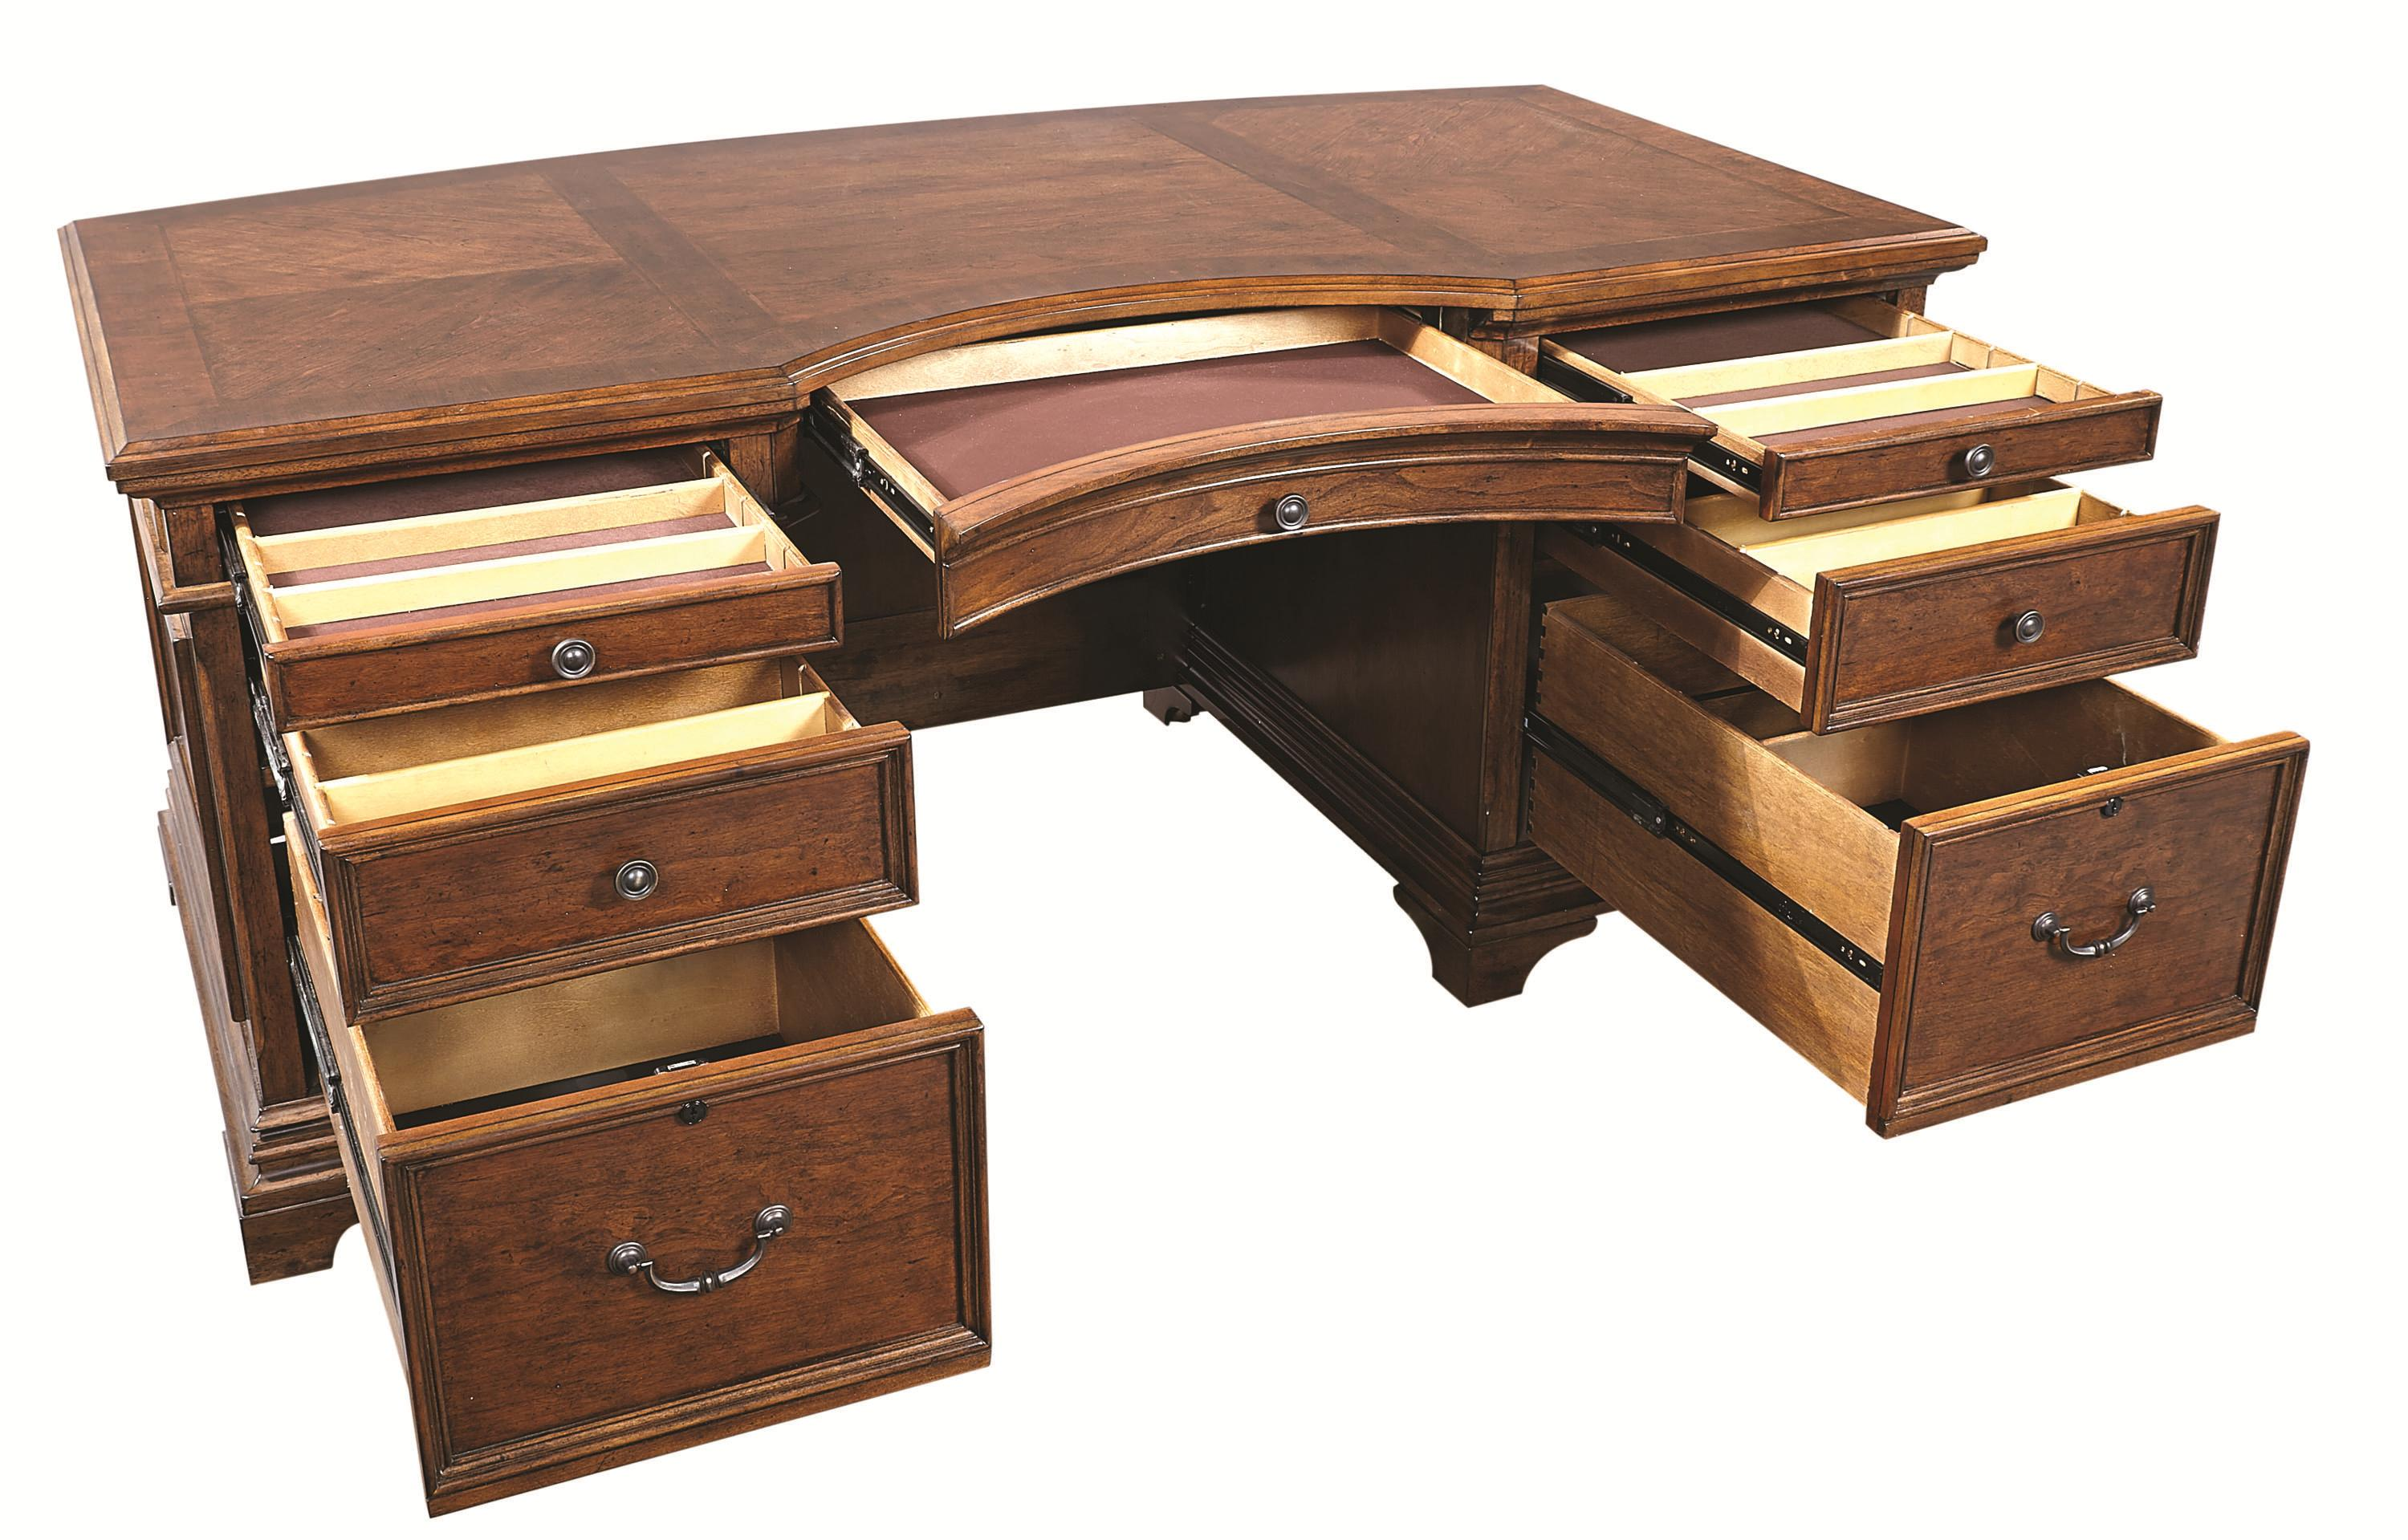 Warm Cherry Executive Desk Home Office Collection: 72-Inch Curved Top Executive Desk With 4 Utility Drawers